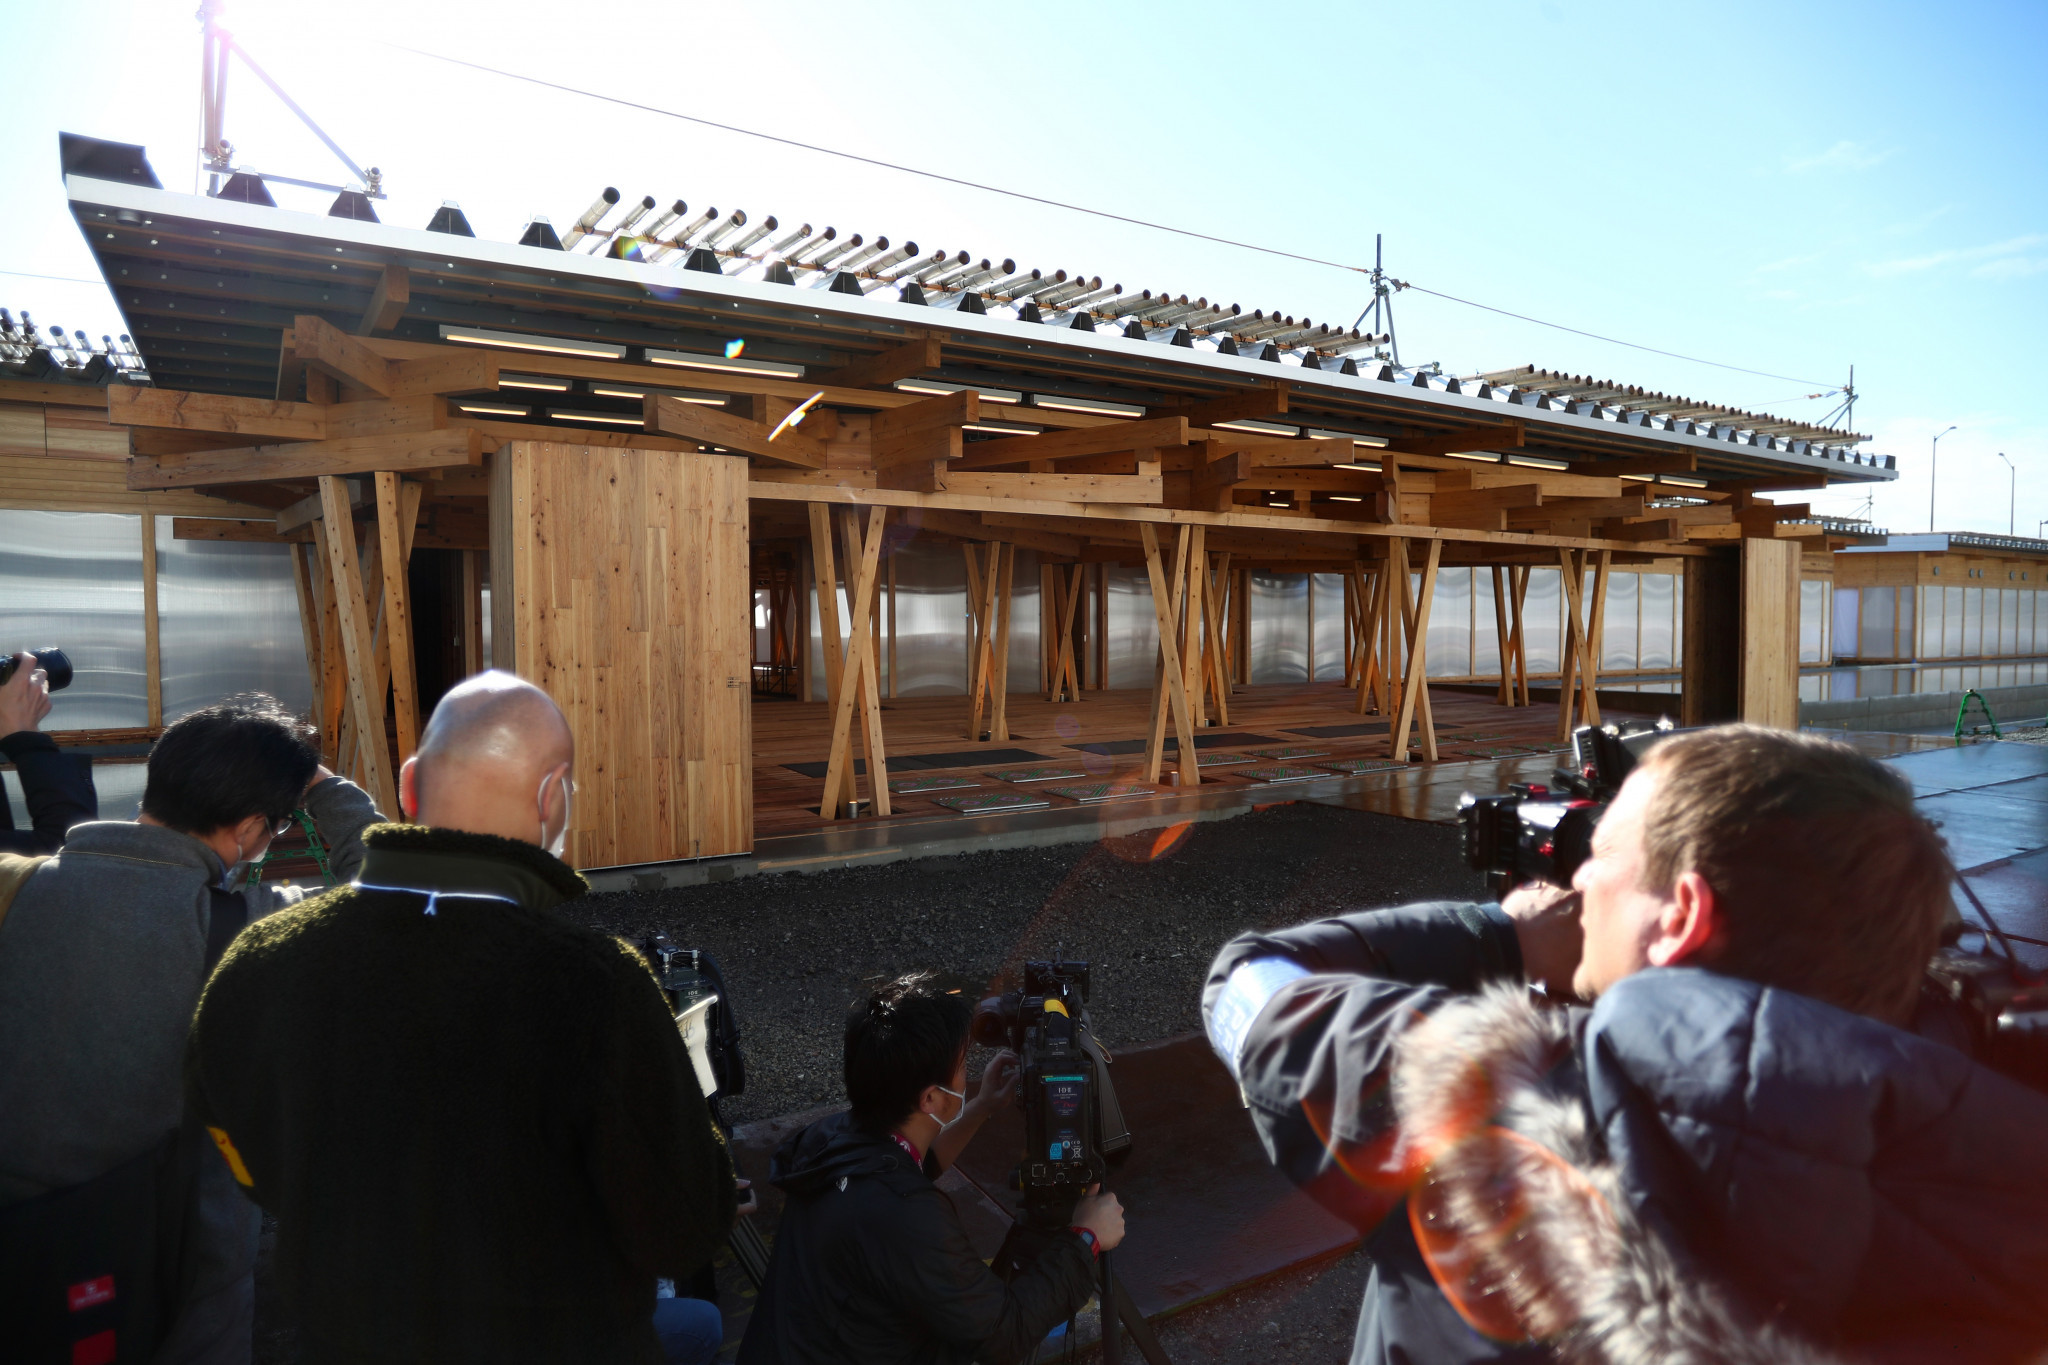 Tokyo 2020 hosts press tour of Plaza in Athletes' Village